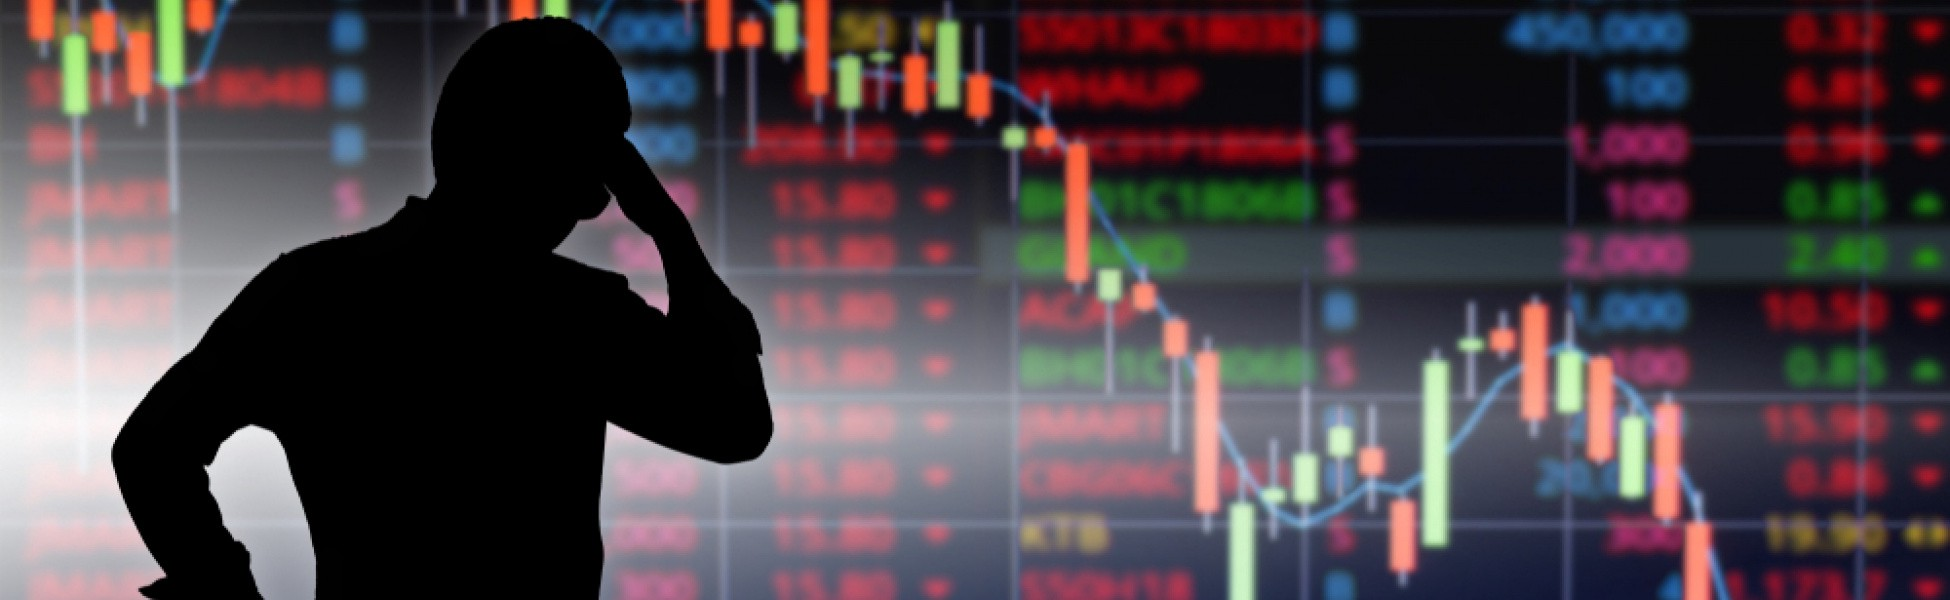 A Wall Street trader looks at a monitor showing the stock market index going down because of the coronavirus pandemic